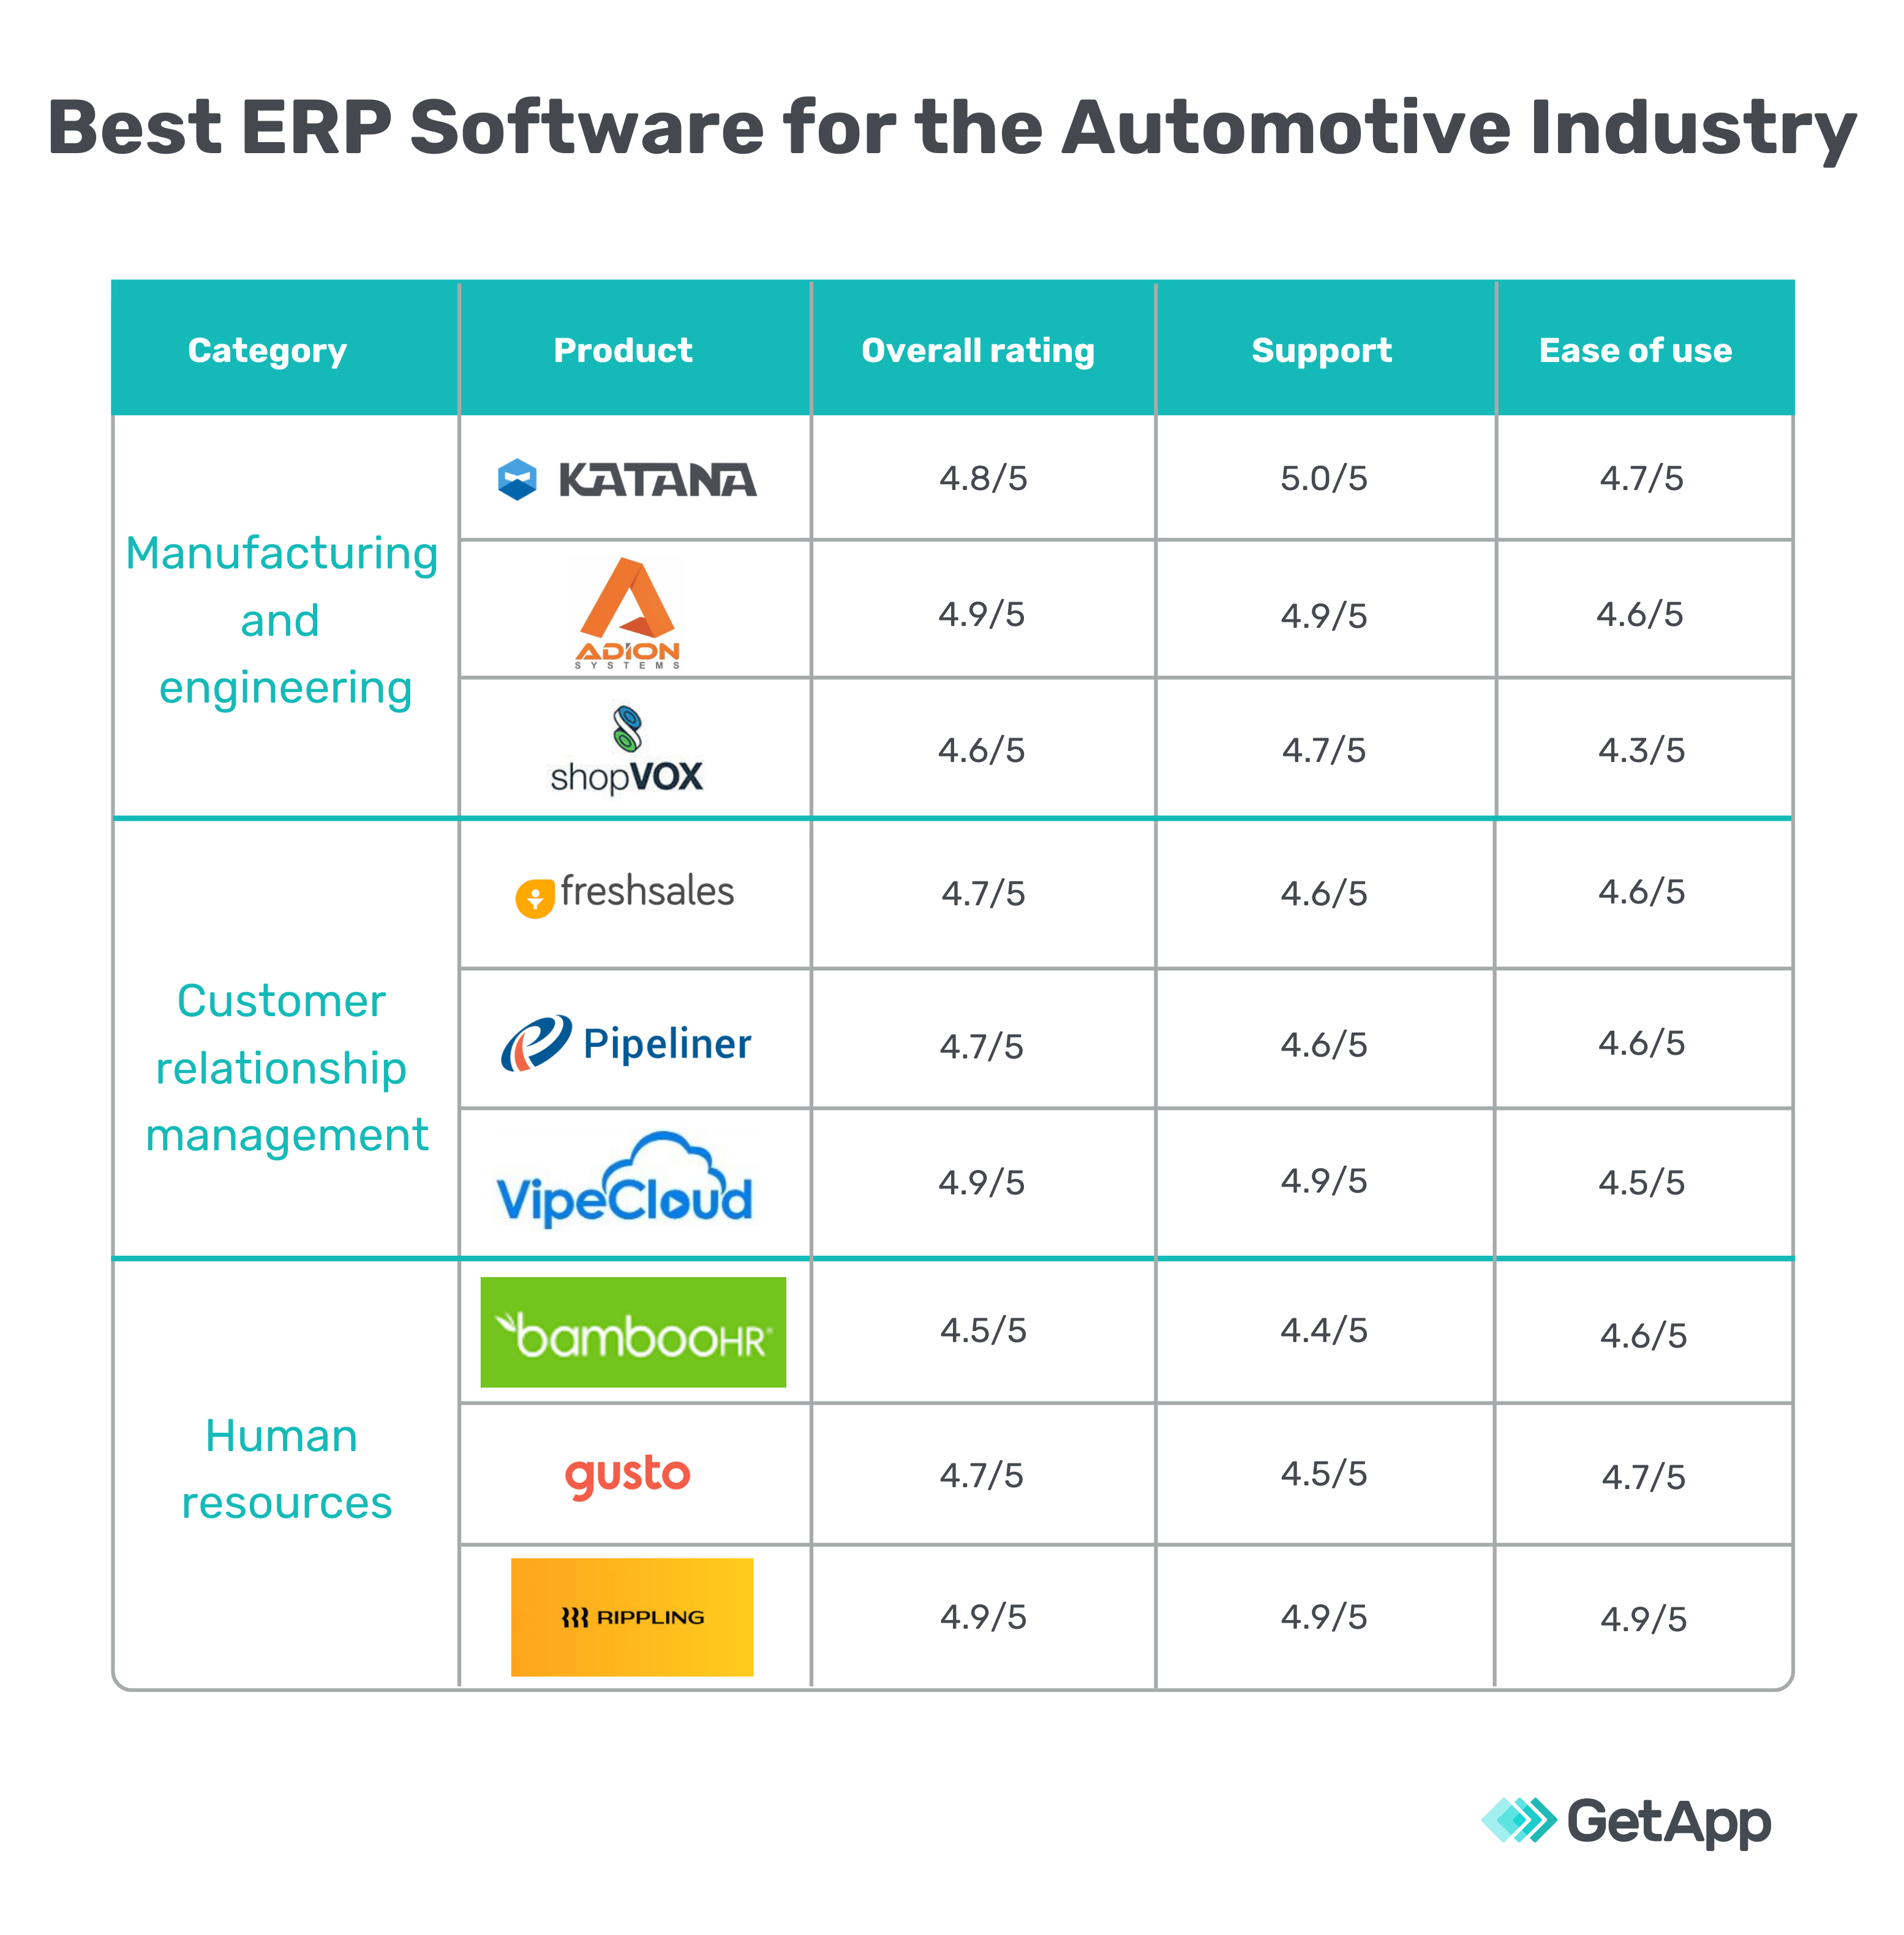 Best ERP software for the automotive industry